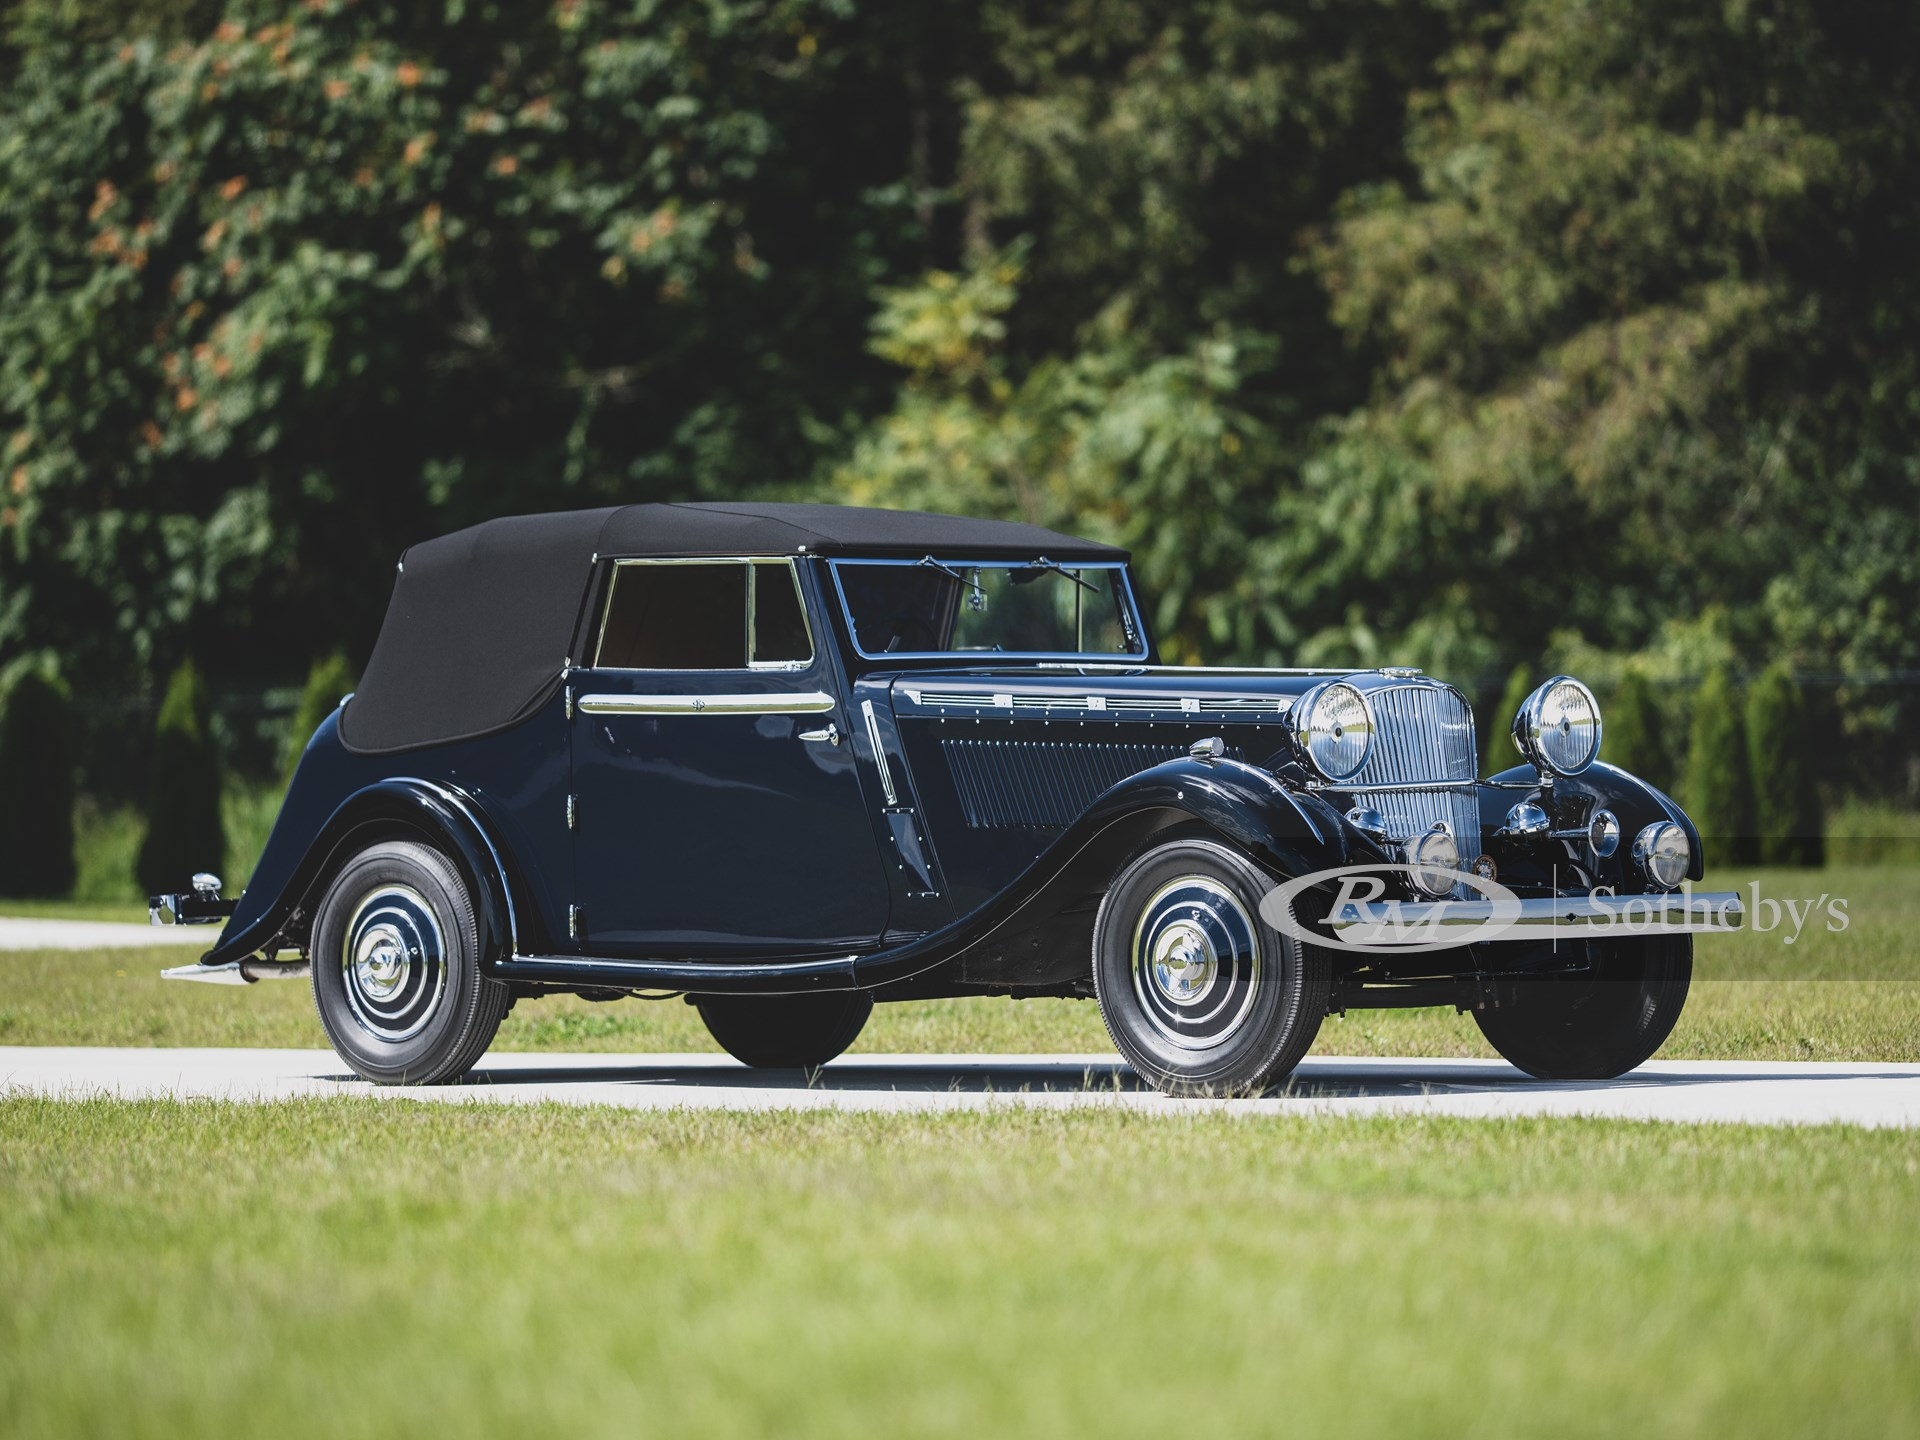 1937 Brough Superior 3½-Litre 'Dual Purpose' Drophead Coupe by Atcherley